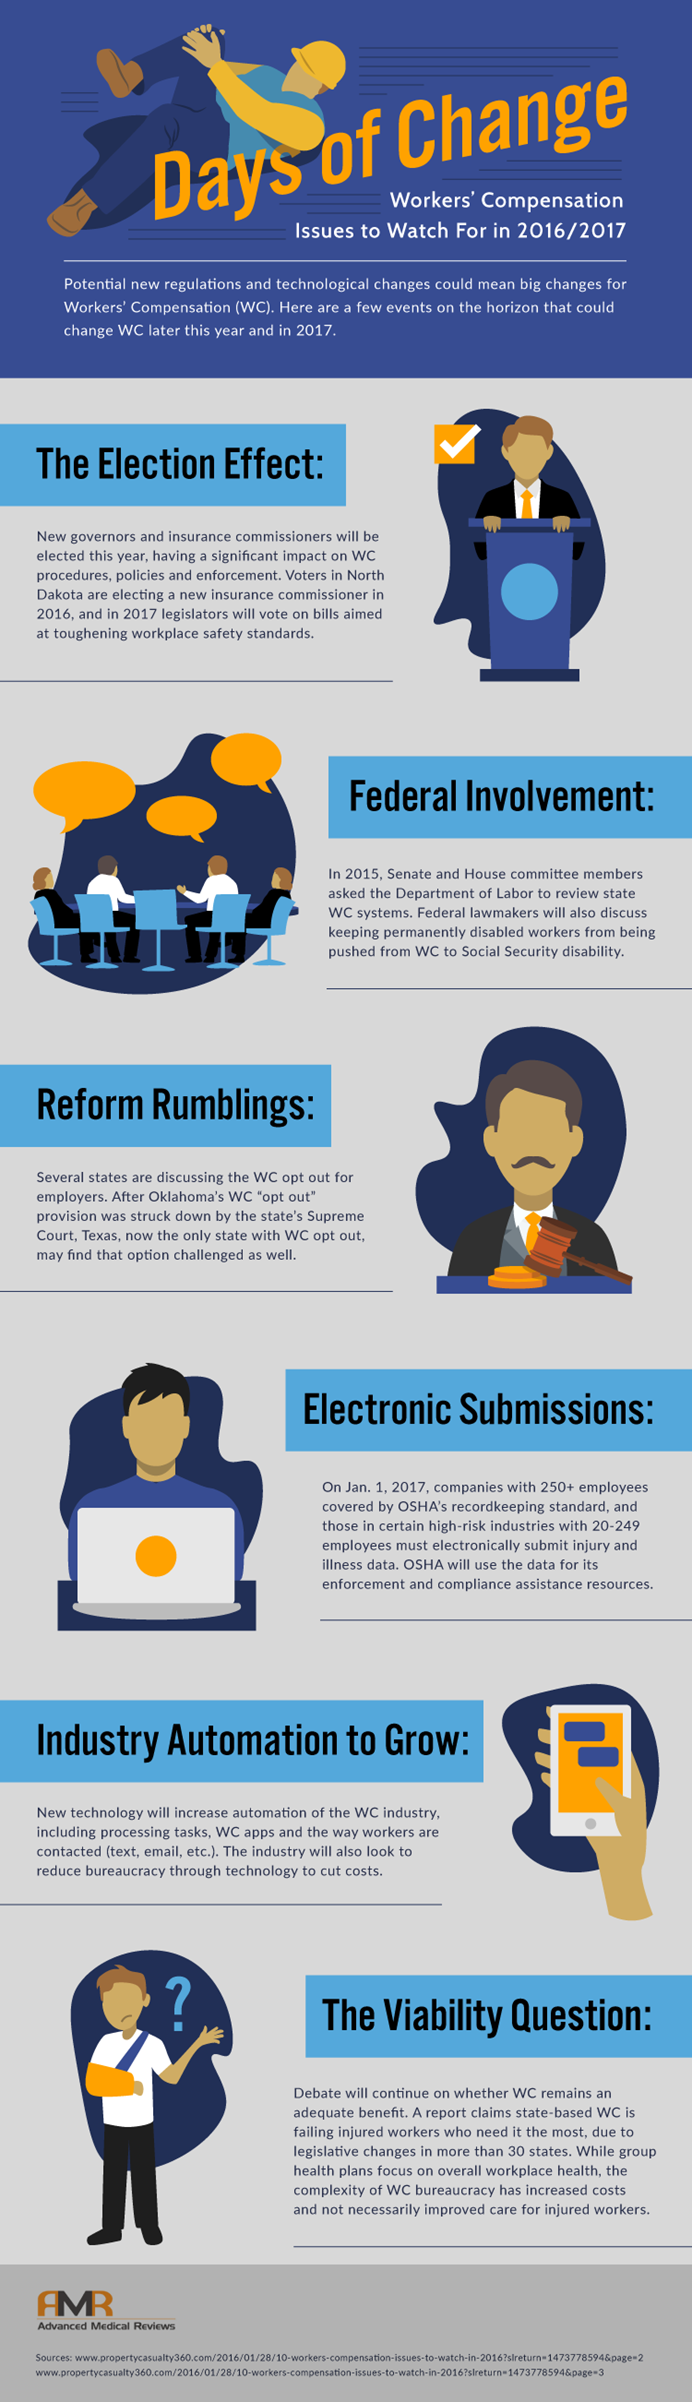 Infographic outlining the changes in workers comp regulations in 2017, including the 2016 election effect and state reforms.